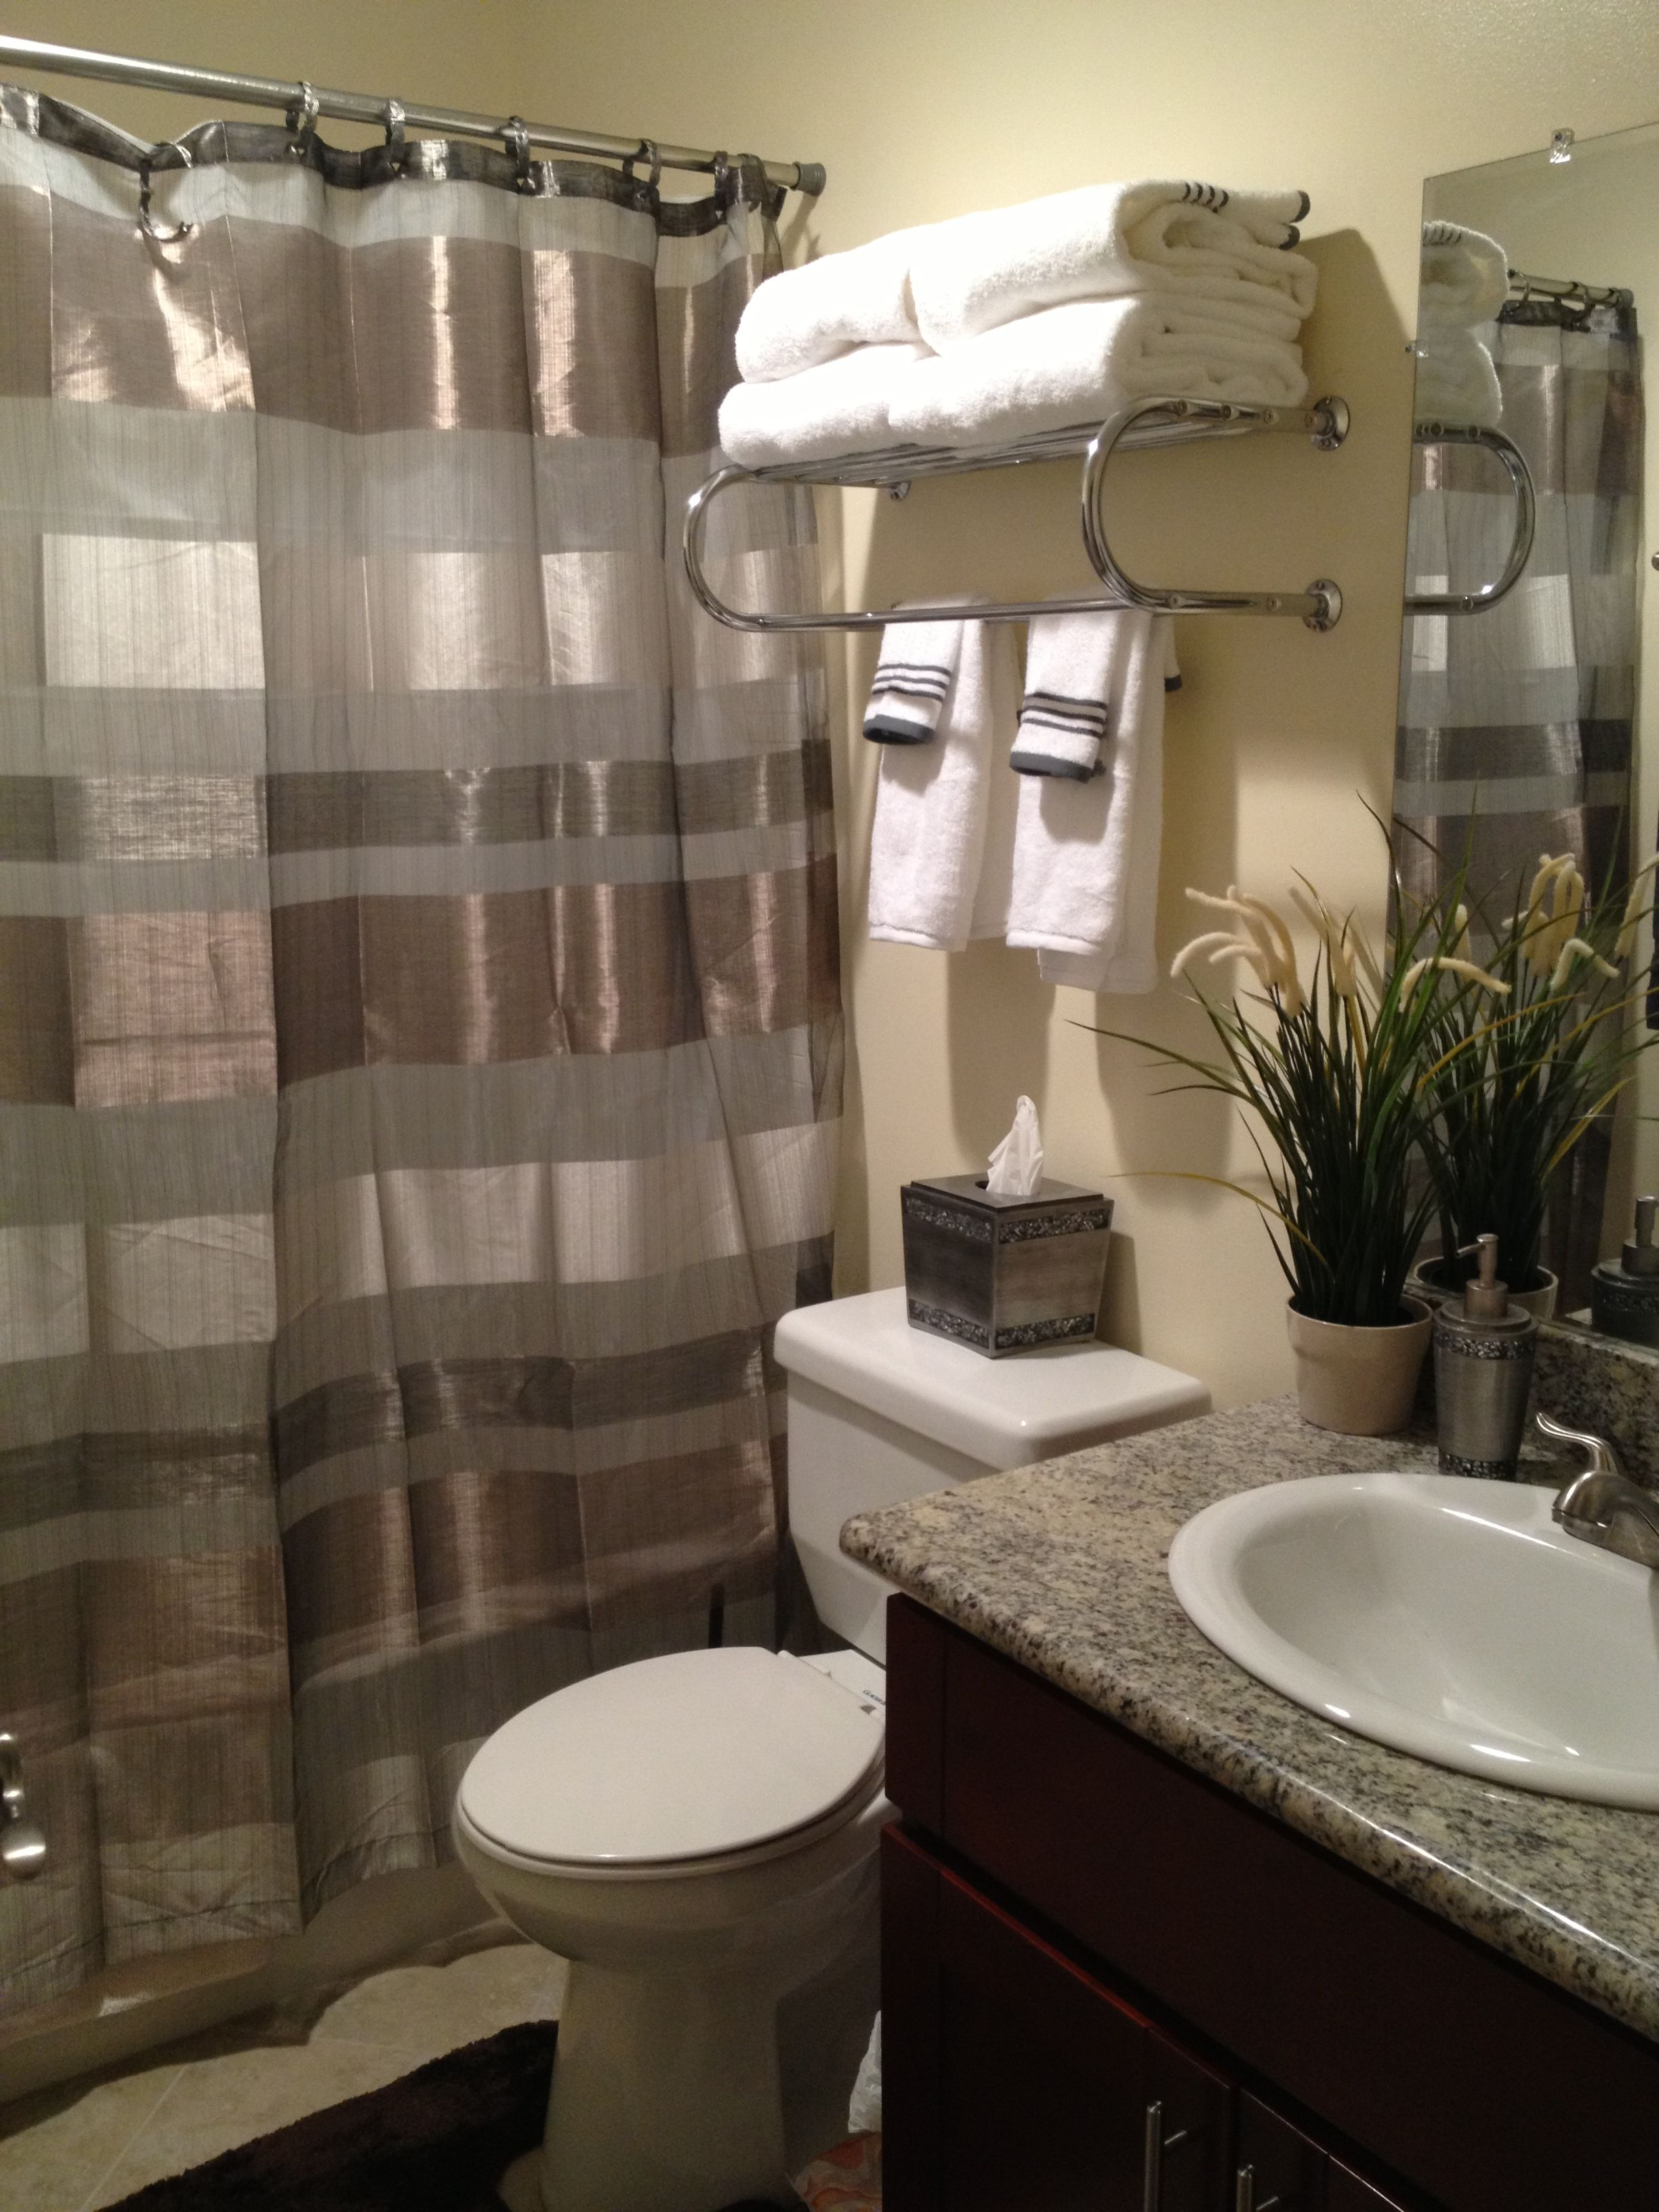 The 25 Best Hotel Shower Curtain Ideas On Pinterest